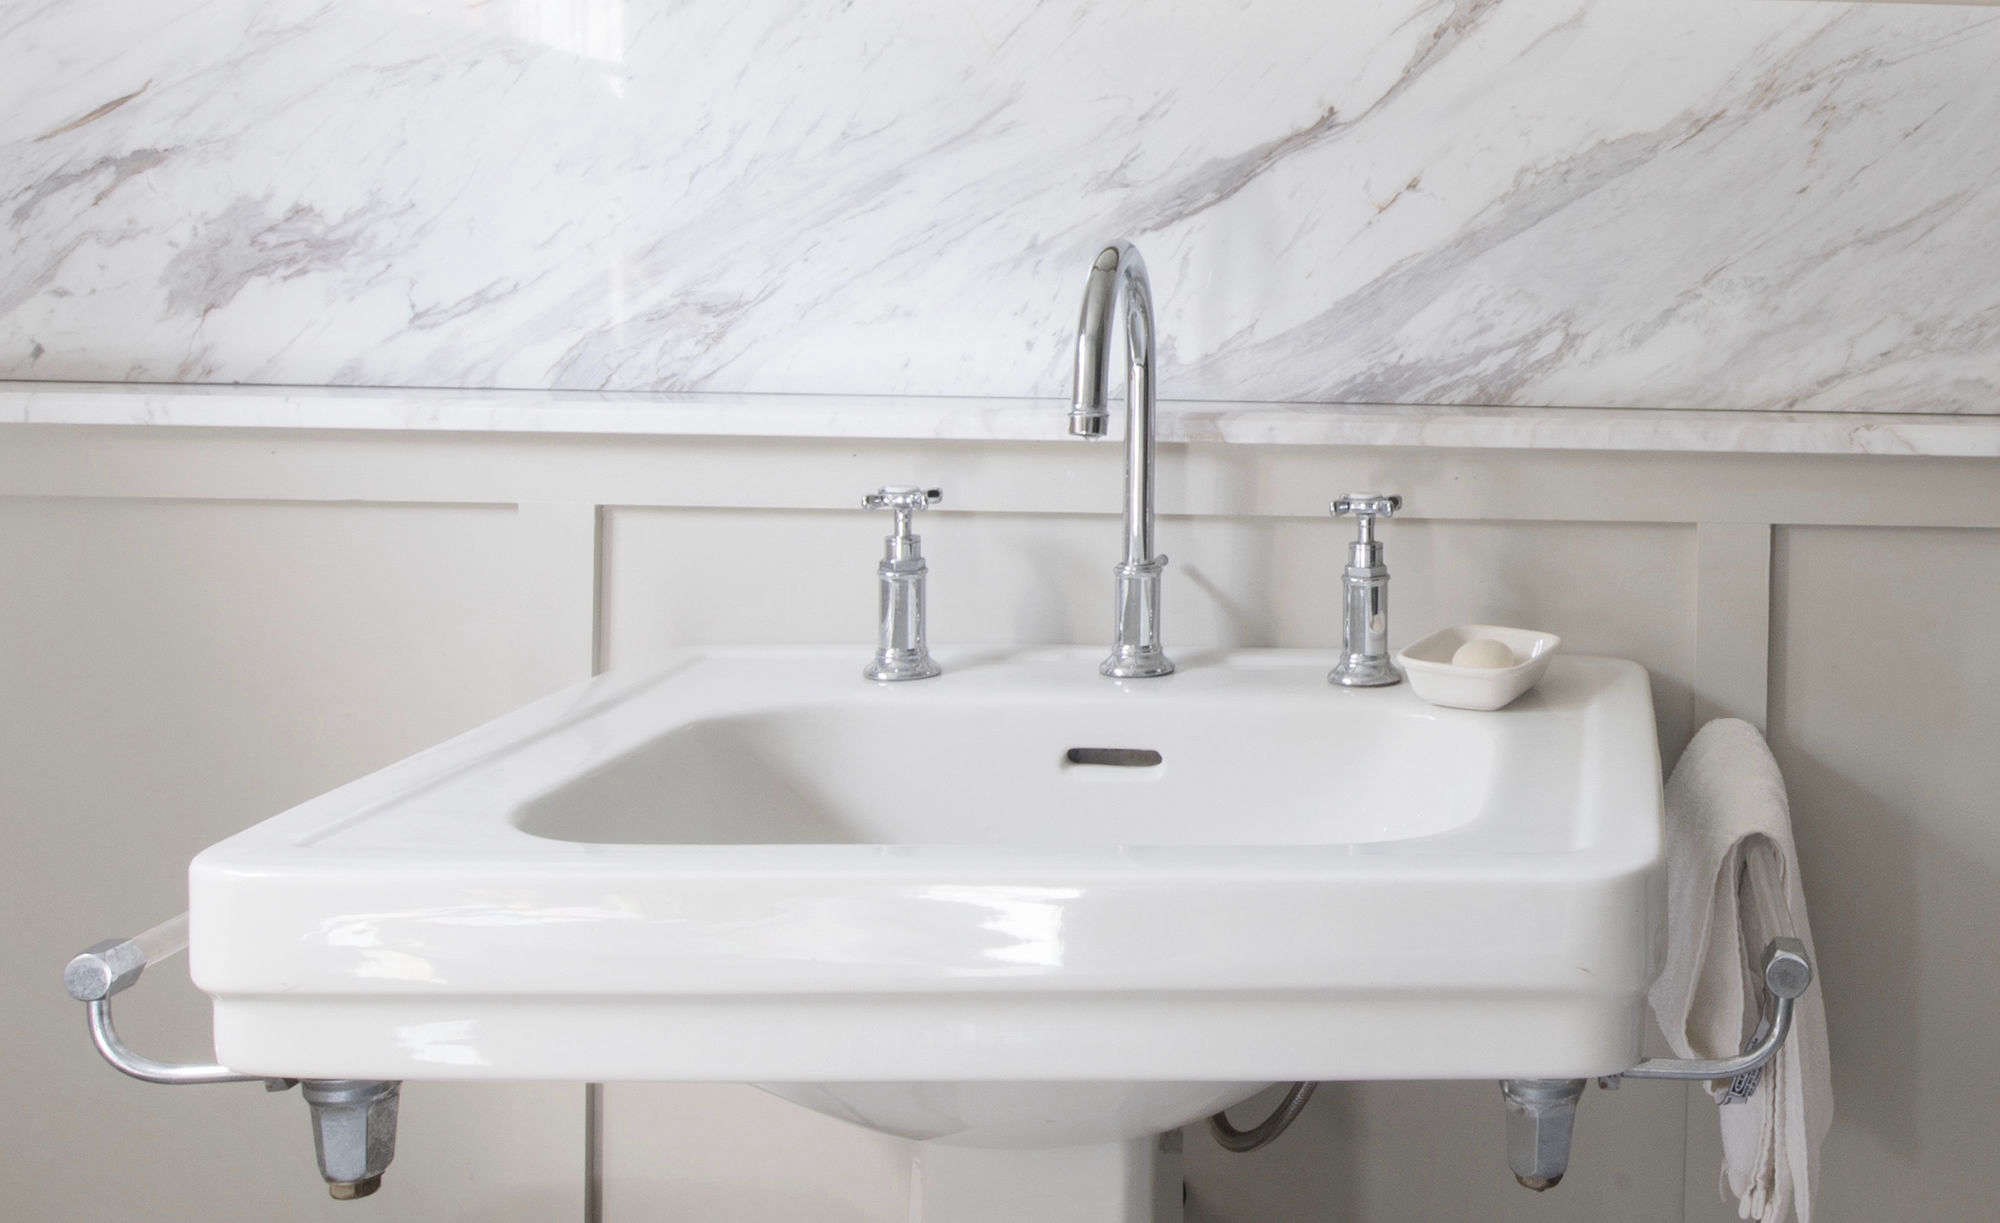 The vintage pedestal sink came with empty metalbracketsfor two towel rods, which Sosa sourced fromZaborski Emporium in Kingston, New York.